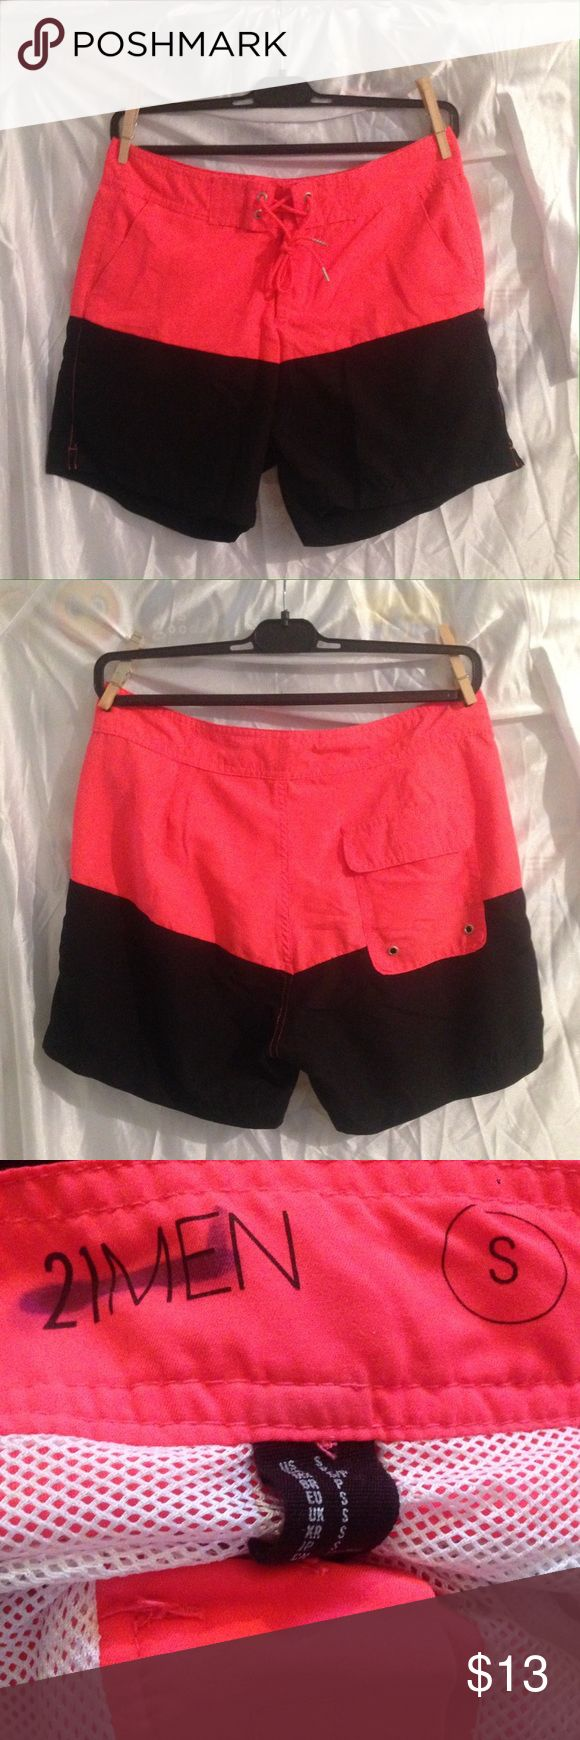 "🏊🏼Men's swim shorts 🏊🏼 Forever 21 men's swim shorts size S. Worn once. The brand is crossed out because it was purchased at a sample sale.🛍 Comes with 3 pockets & Mesh lining. 💯% polyester. Outseam measures 15"". Bundle and save 10%!! 💕🦄 21men Swim Swim Trunks"